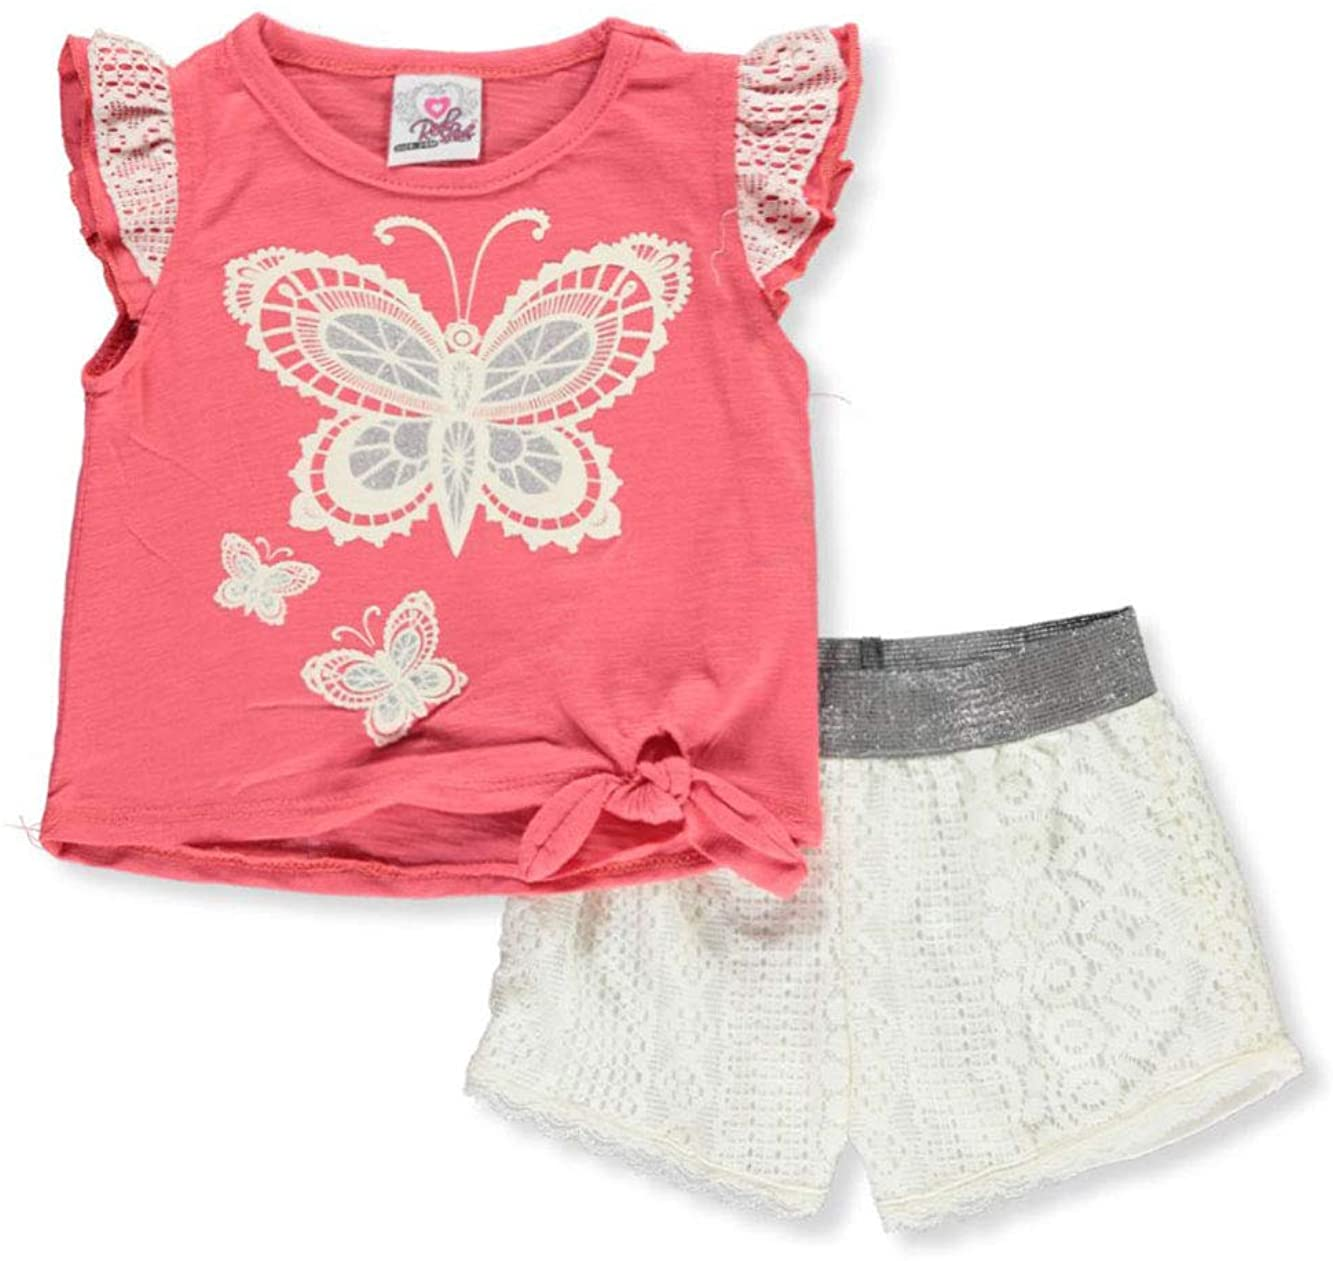 Real Love Baby Girls Butterflies and Lace 2-Piece Shorts Set Outfit